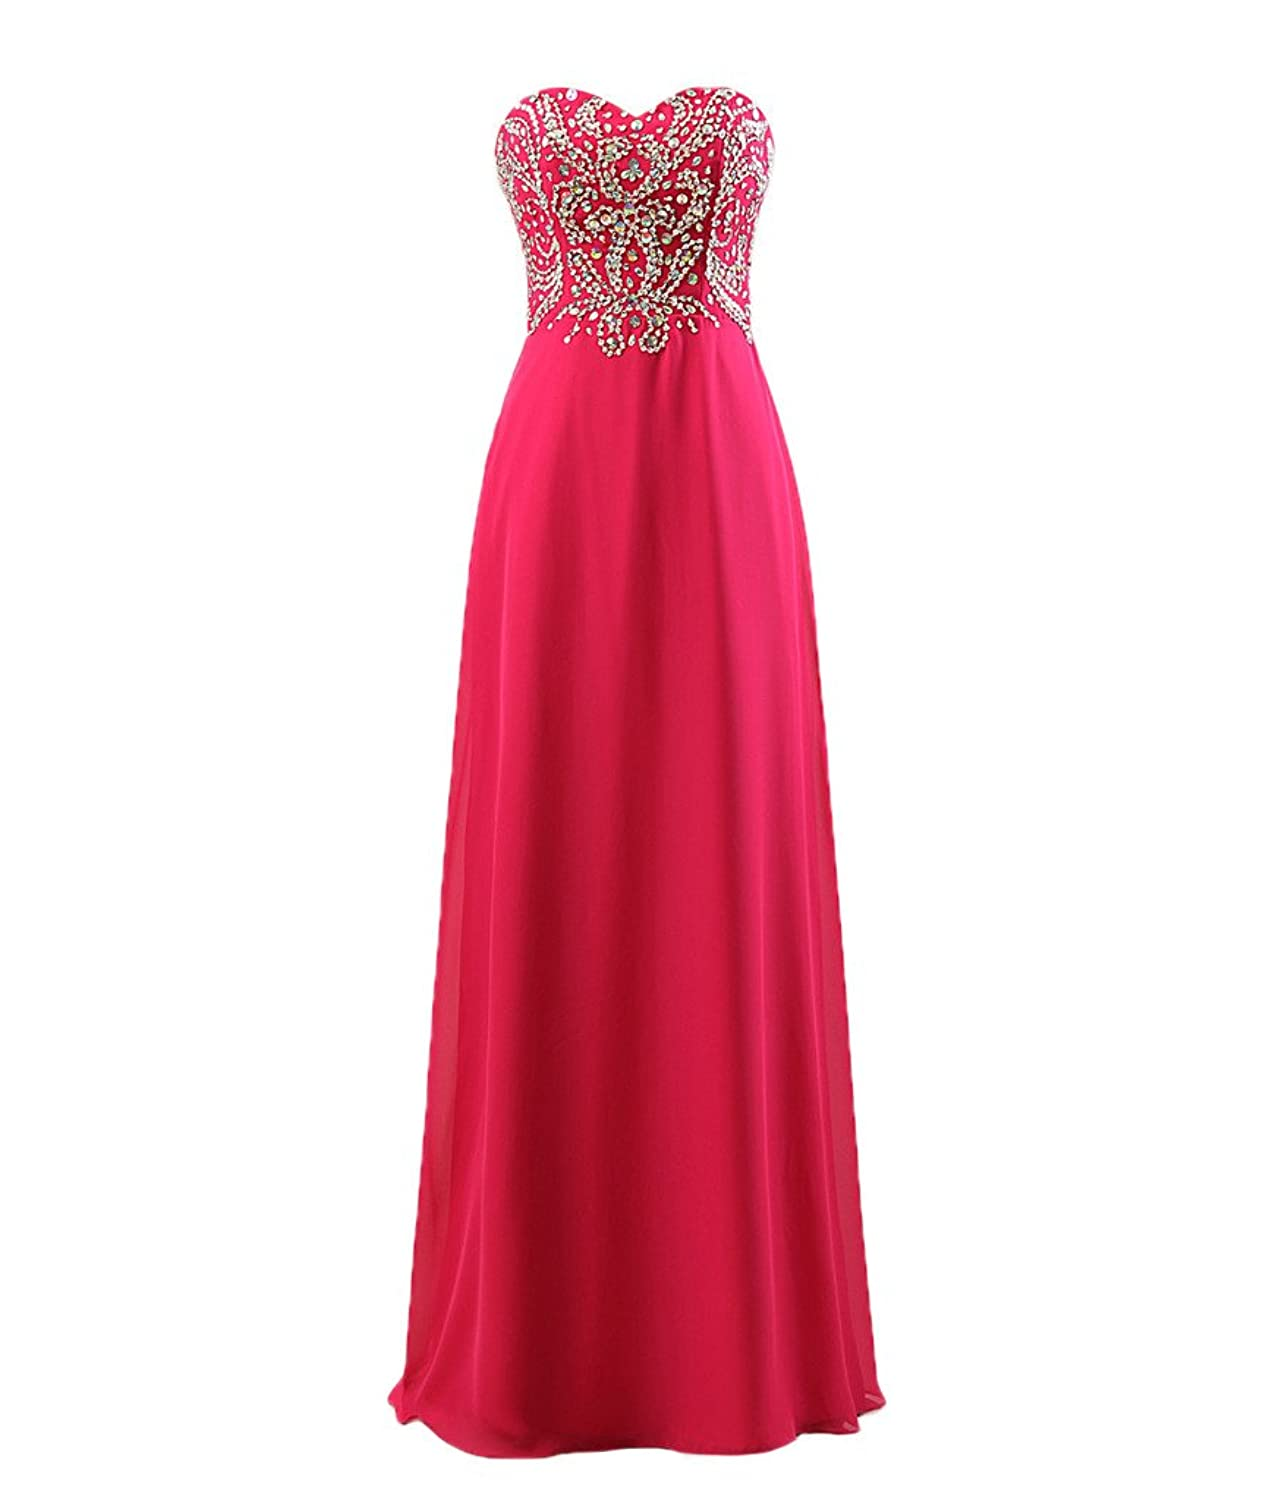 Fanmu Womens Sparkly Sweetheart Prom Dress Form Party Evening Gown